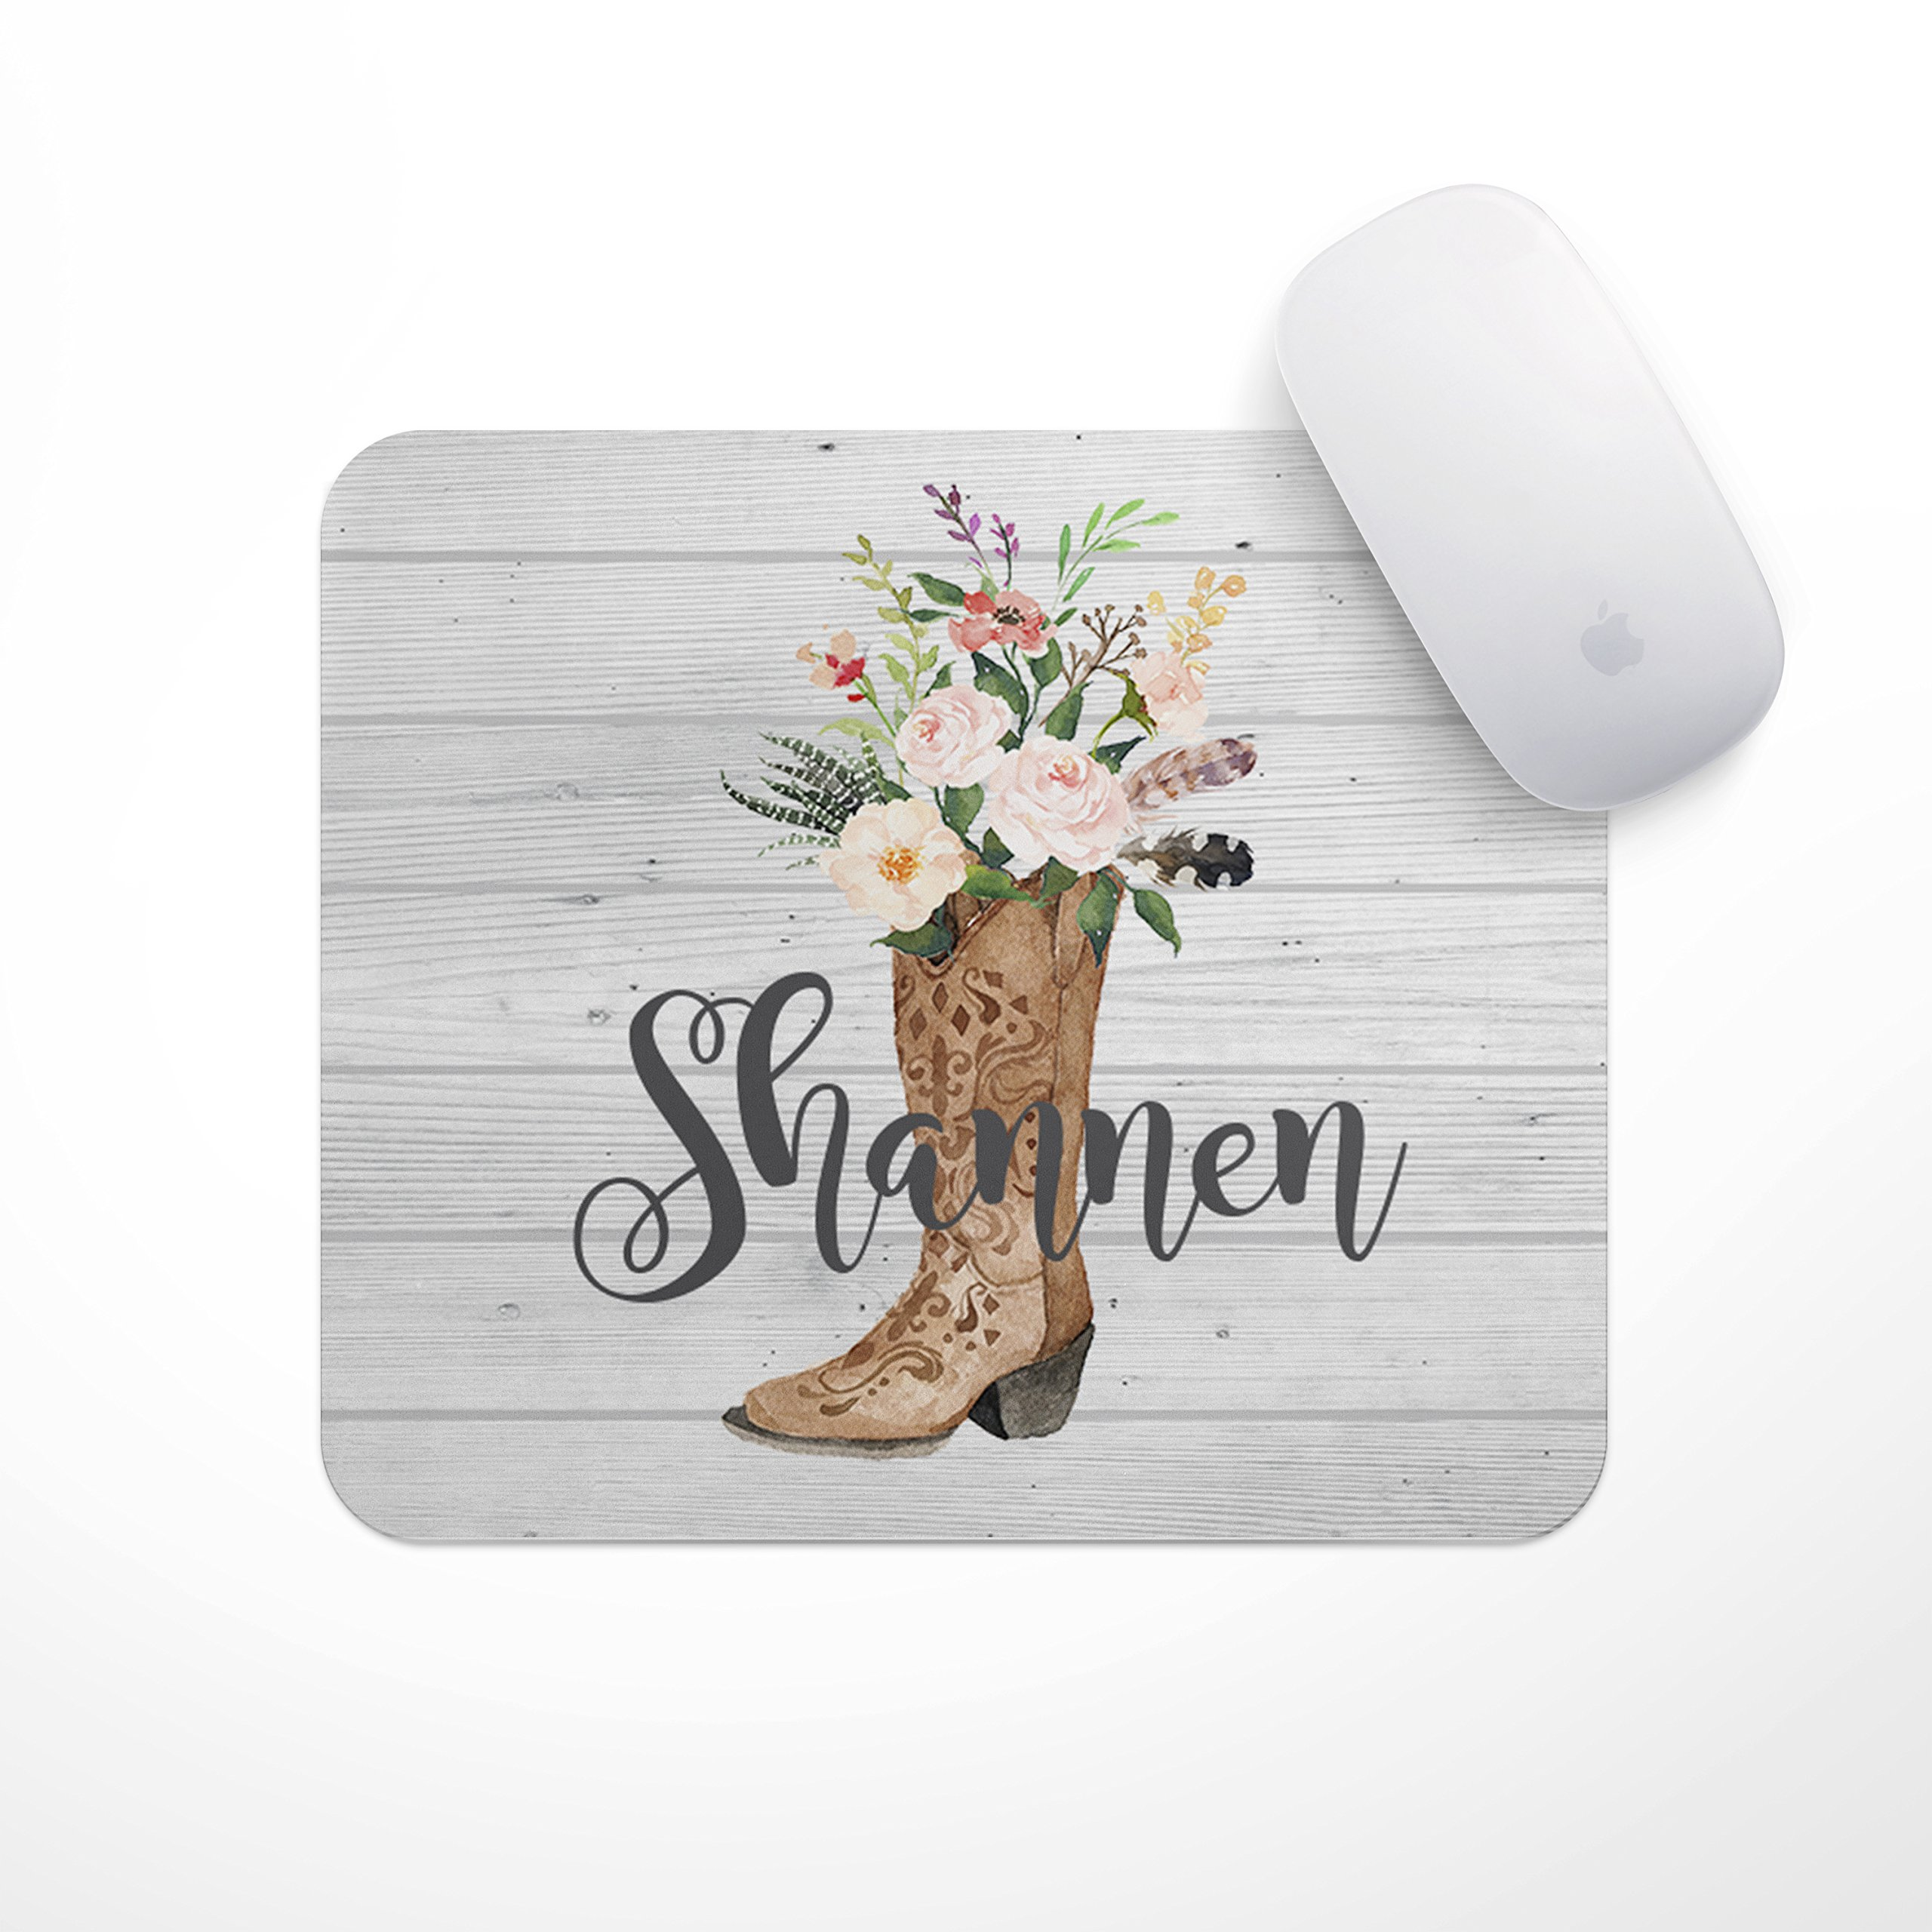 Personalized Mousepad - Custom Mouse Pads (Cowgirl Boot)- Neoprene Mouse Pad - Office Desk Decor - Gaming Mousepads by The Navy Knot